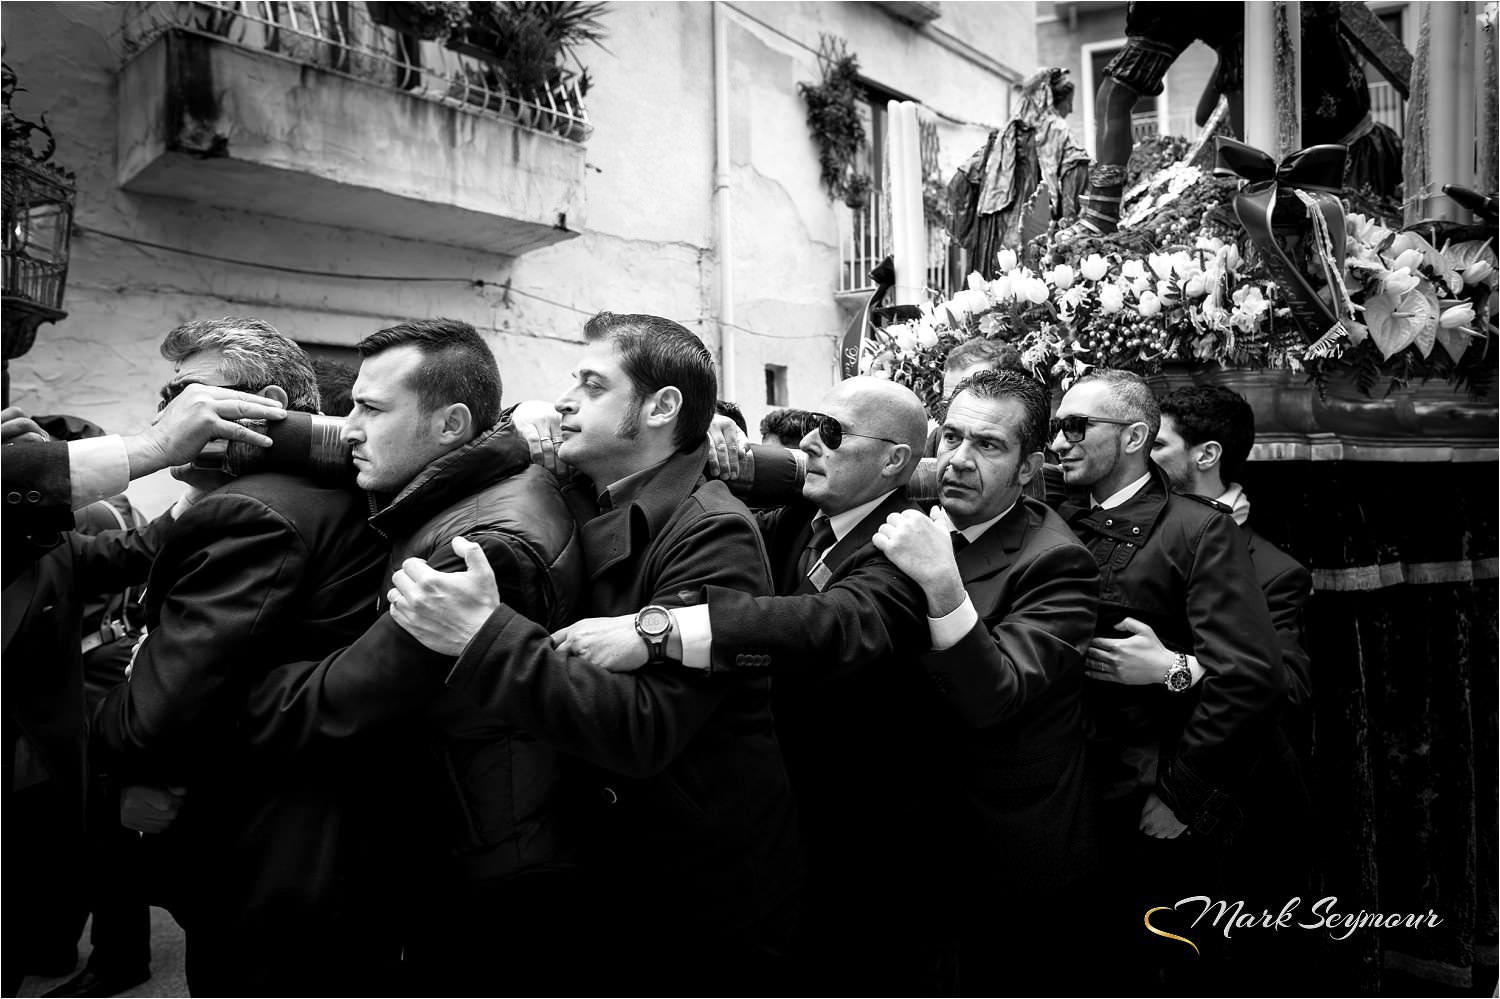 trapani guys Concept stefaniamode is an exclusive retail destination in trapani, sicily region, for men and women with distinctive and dynamic style what started in 1971 as a small retailer in trapani, soon expanded into six storefronts in the charming historic center and in the medieval small town of erice, positioning itself in the sector thanks to the superior merchandise represented in the stores.